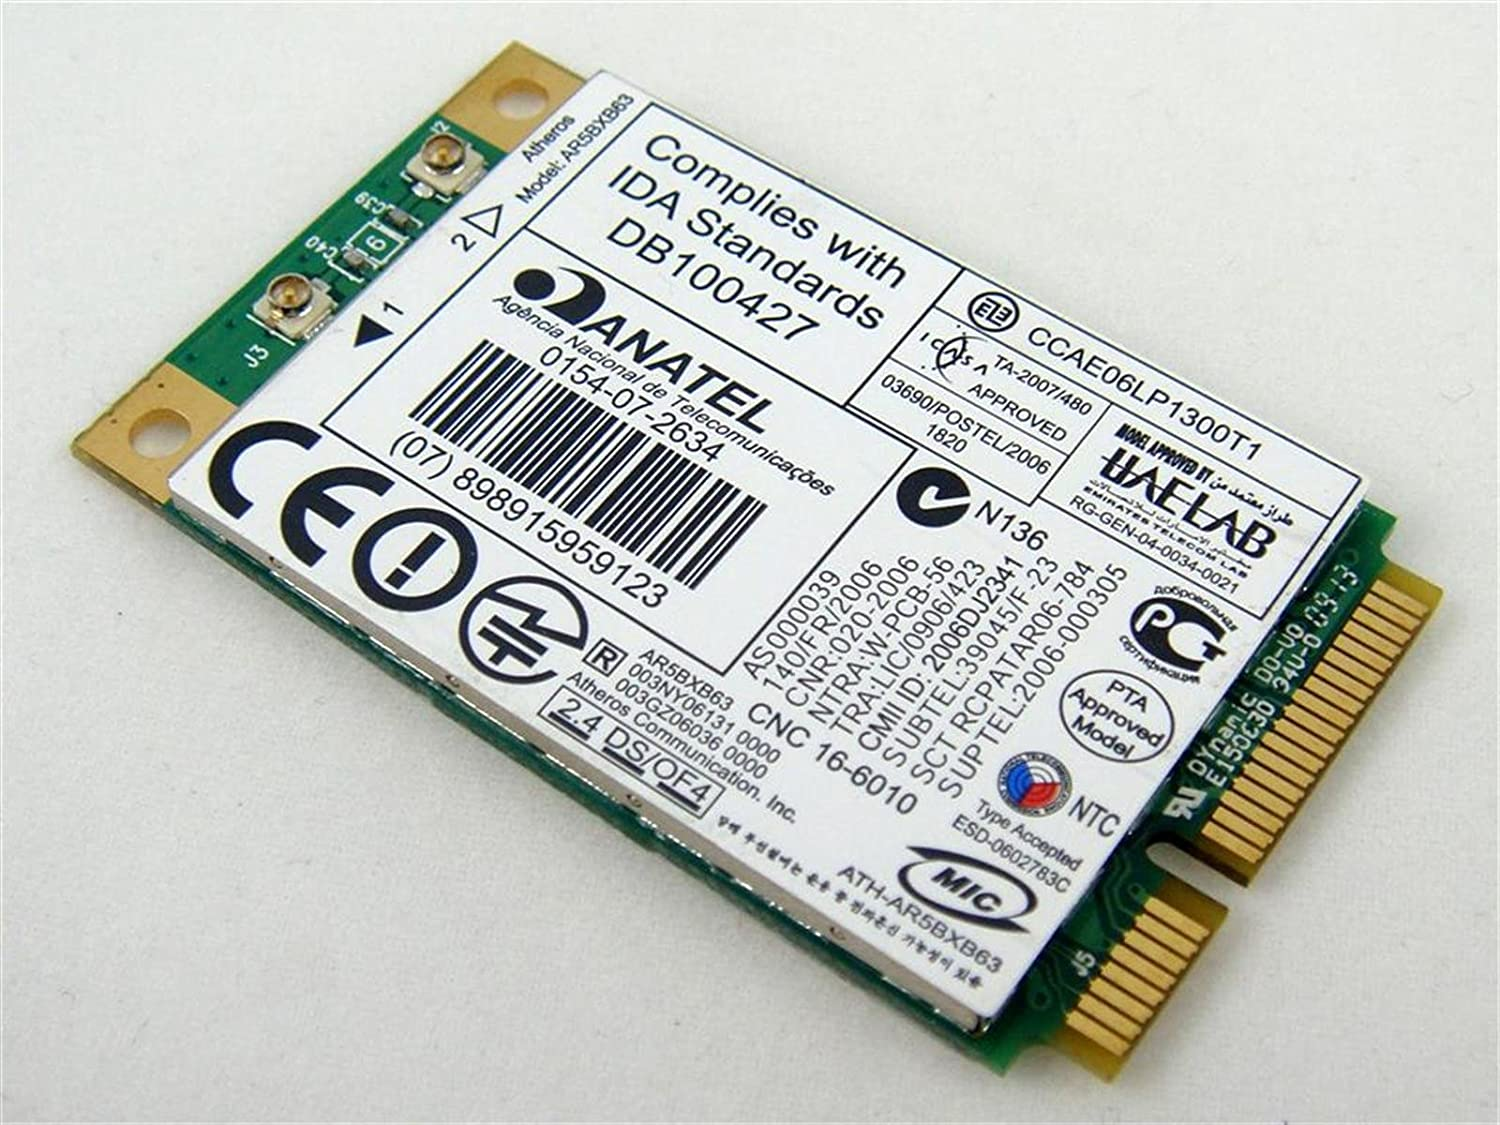 QUALCOMM ATHEROS AR5007 WIFI ADAPTER WINDOWS 8 DRIVER